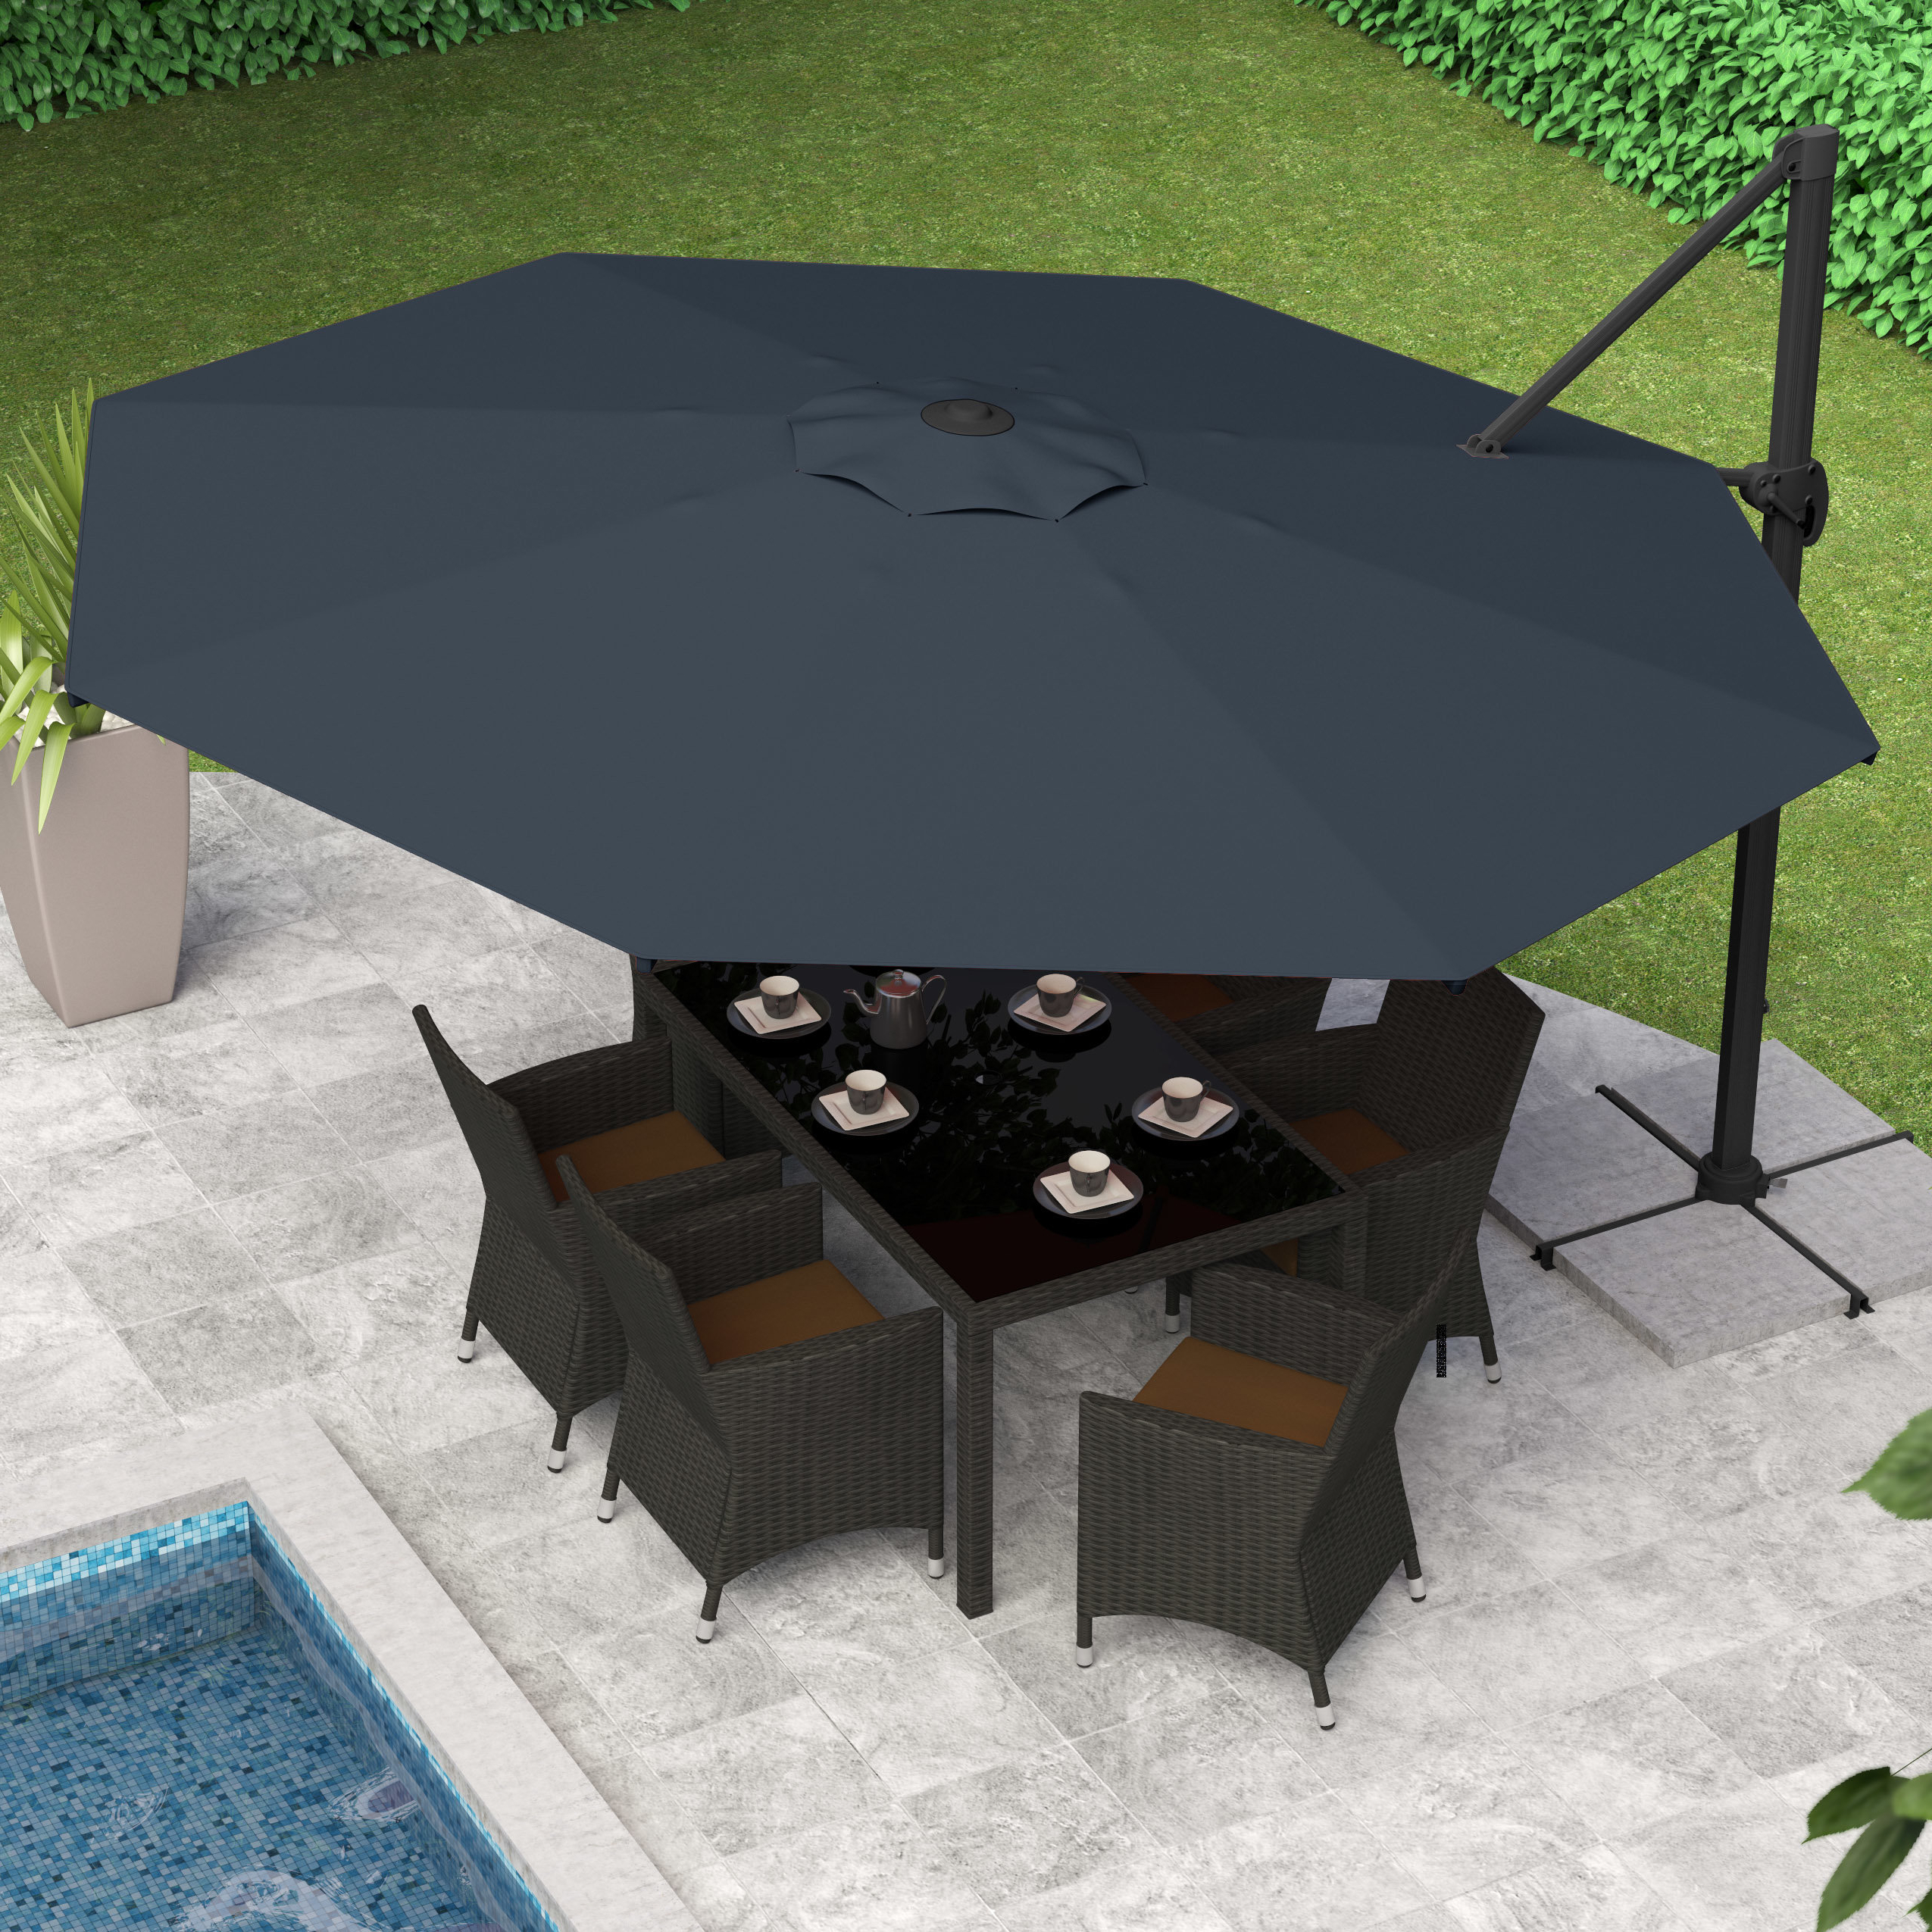 Latest Carlisle Cantilever Sunbrella Umbrellas Throughout Gribble 11.3' Cantilever Umbrella (Gallery 20 of 20)